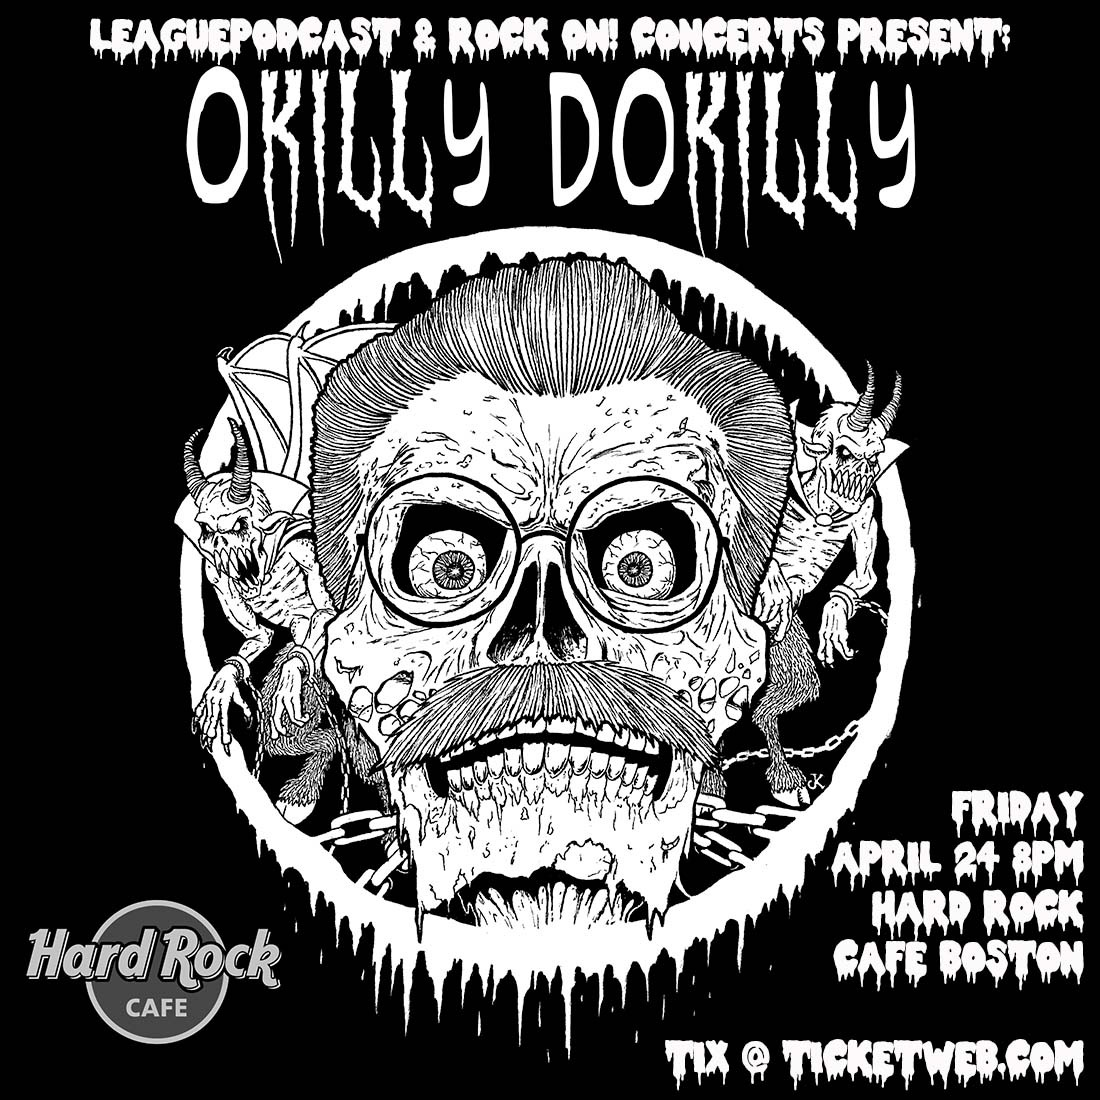 Fri 4/23/21 - OKILLY DOKILLY The World's Only NEDal Band + Steaksauce Mustache @ Hard Rock Cafe Boston - Rescheduled from 4/24/20 - All Tix Honored